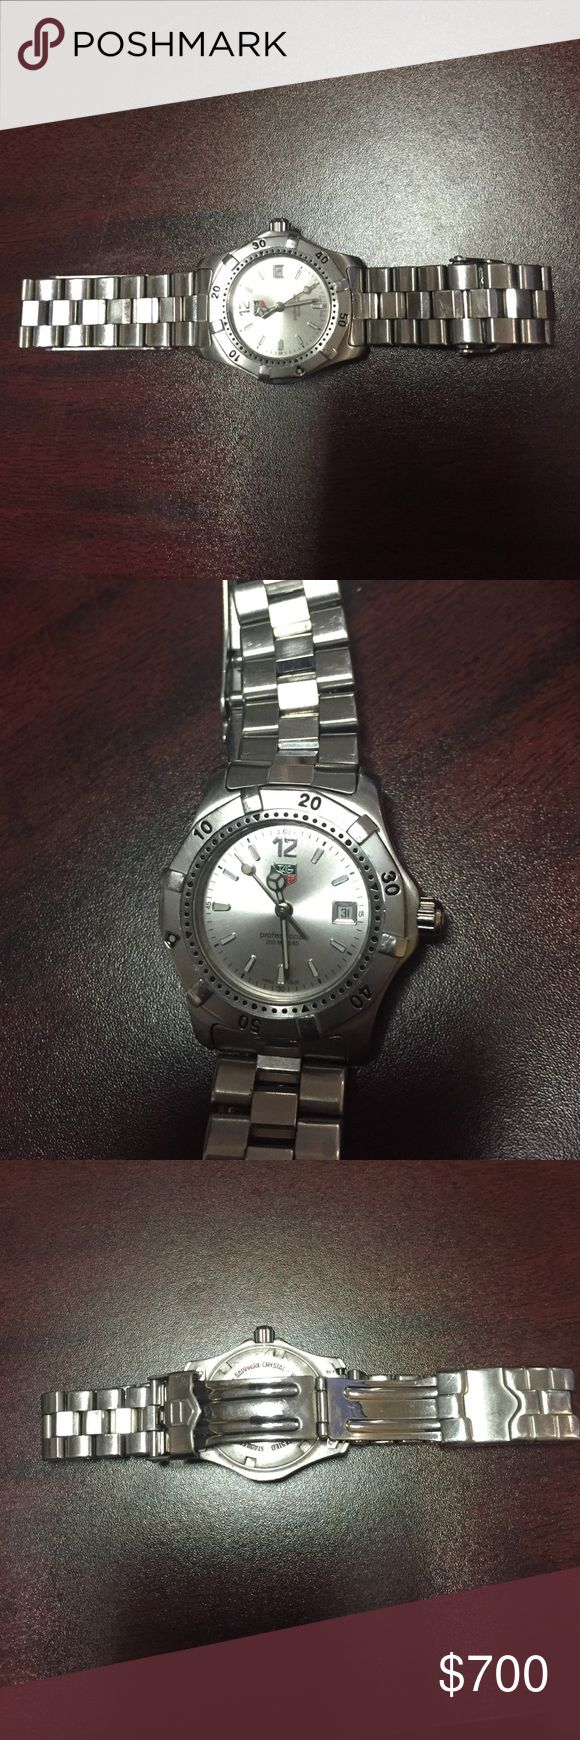 ⚡HOT DEAL!!⚡️Lds Tag Heuer ⚡️⚡️CHECKITOUT⚡️⚡️Great classic ladies Tag Heuer Professional Watch in great condition. Very little wear, some scratches on case back and very small light scratches on band. Crystal in perfect condition. Really very durable and versatile. Tag Heuer Accessories Watches